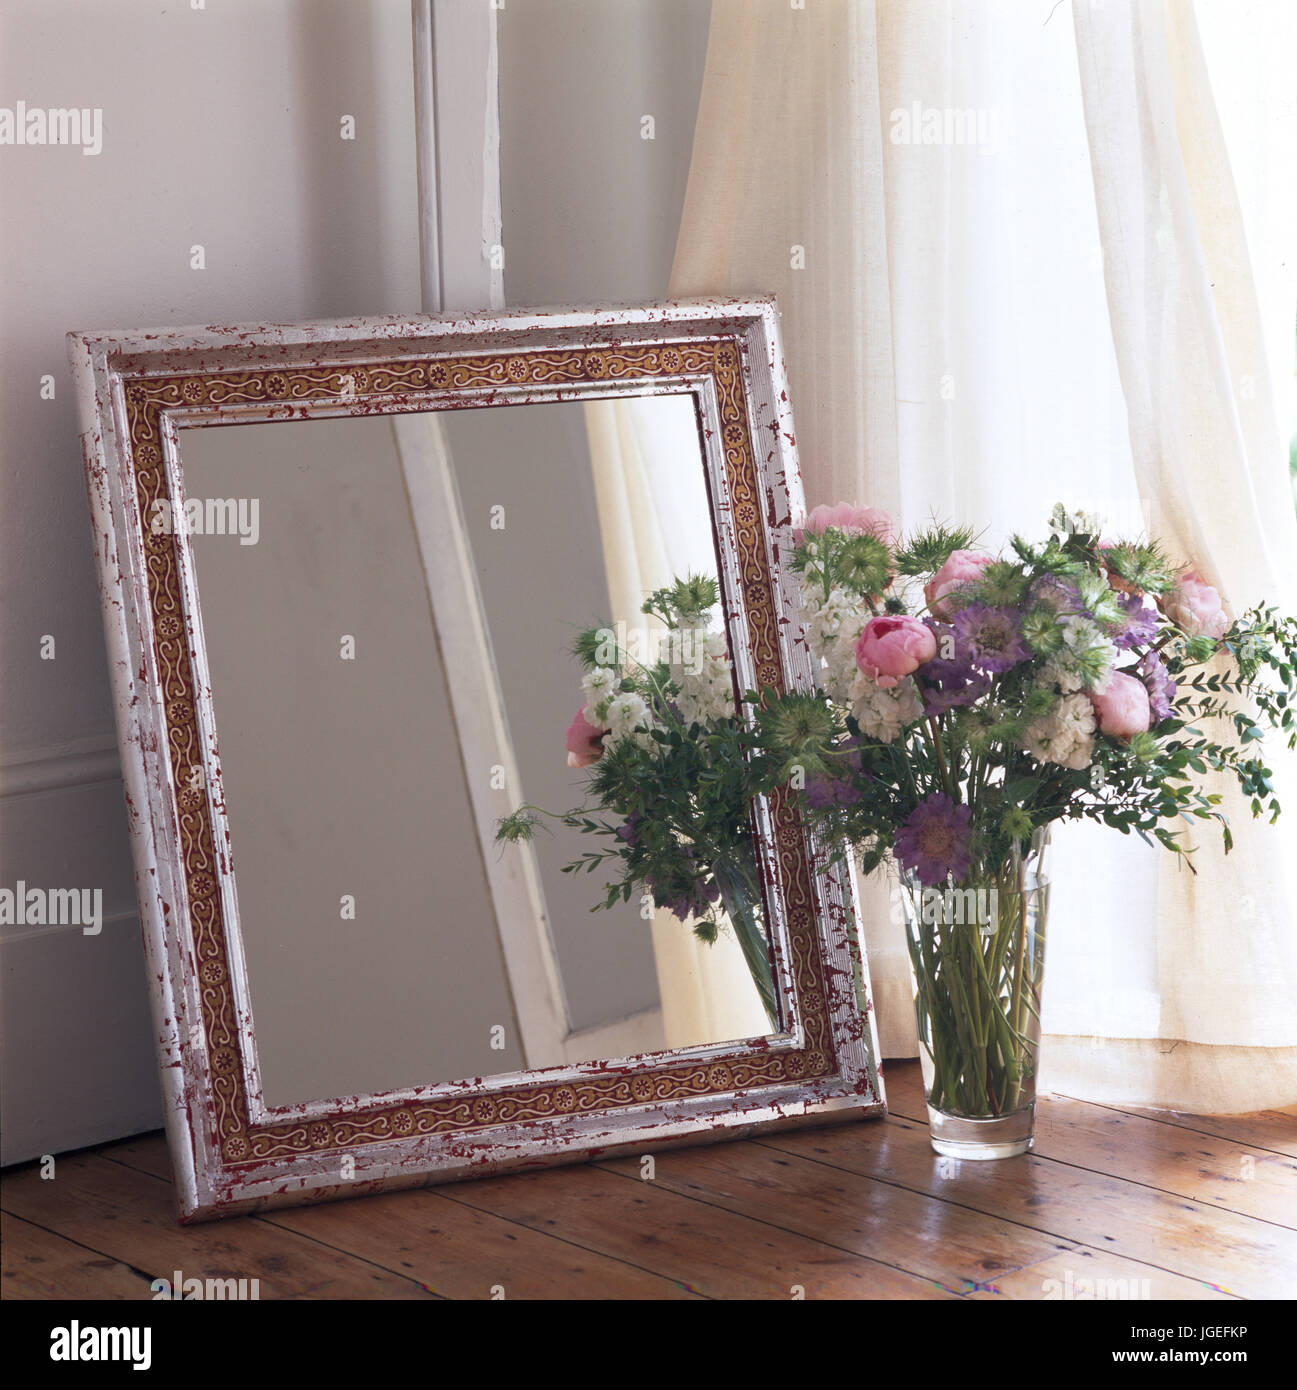 Closeup of free-standing mirror leant against wall with vase of pink and   mauve flowers. - Stock Image